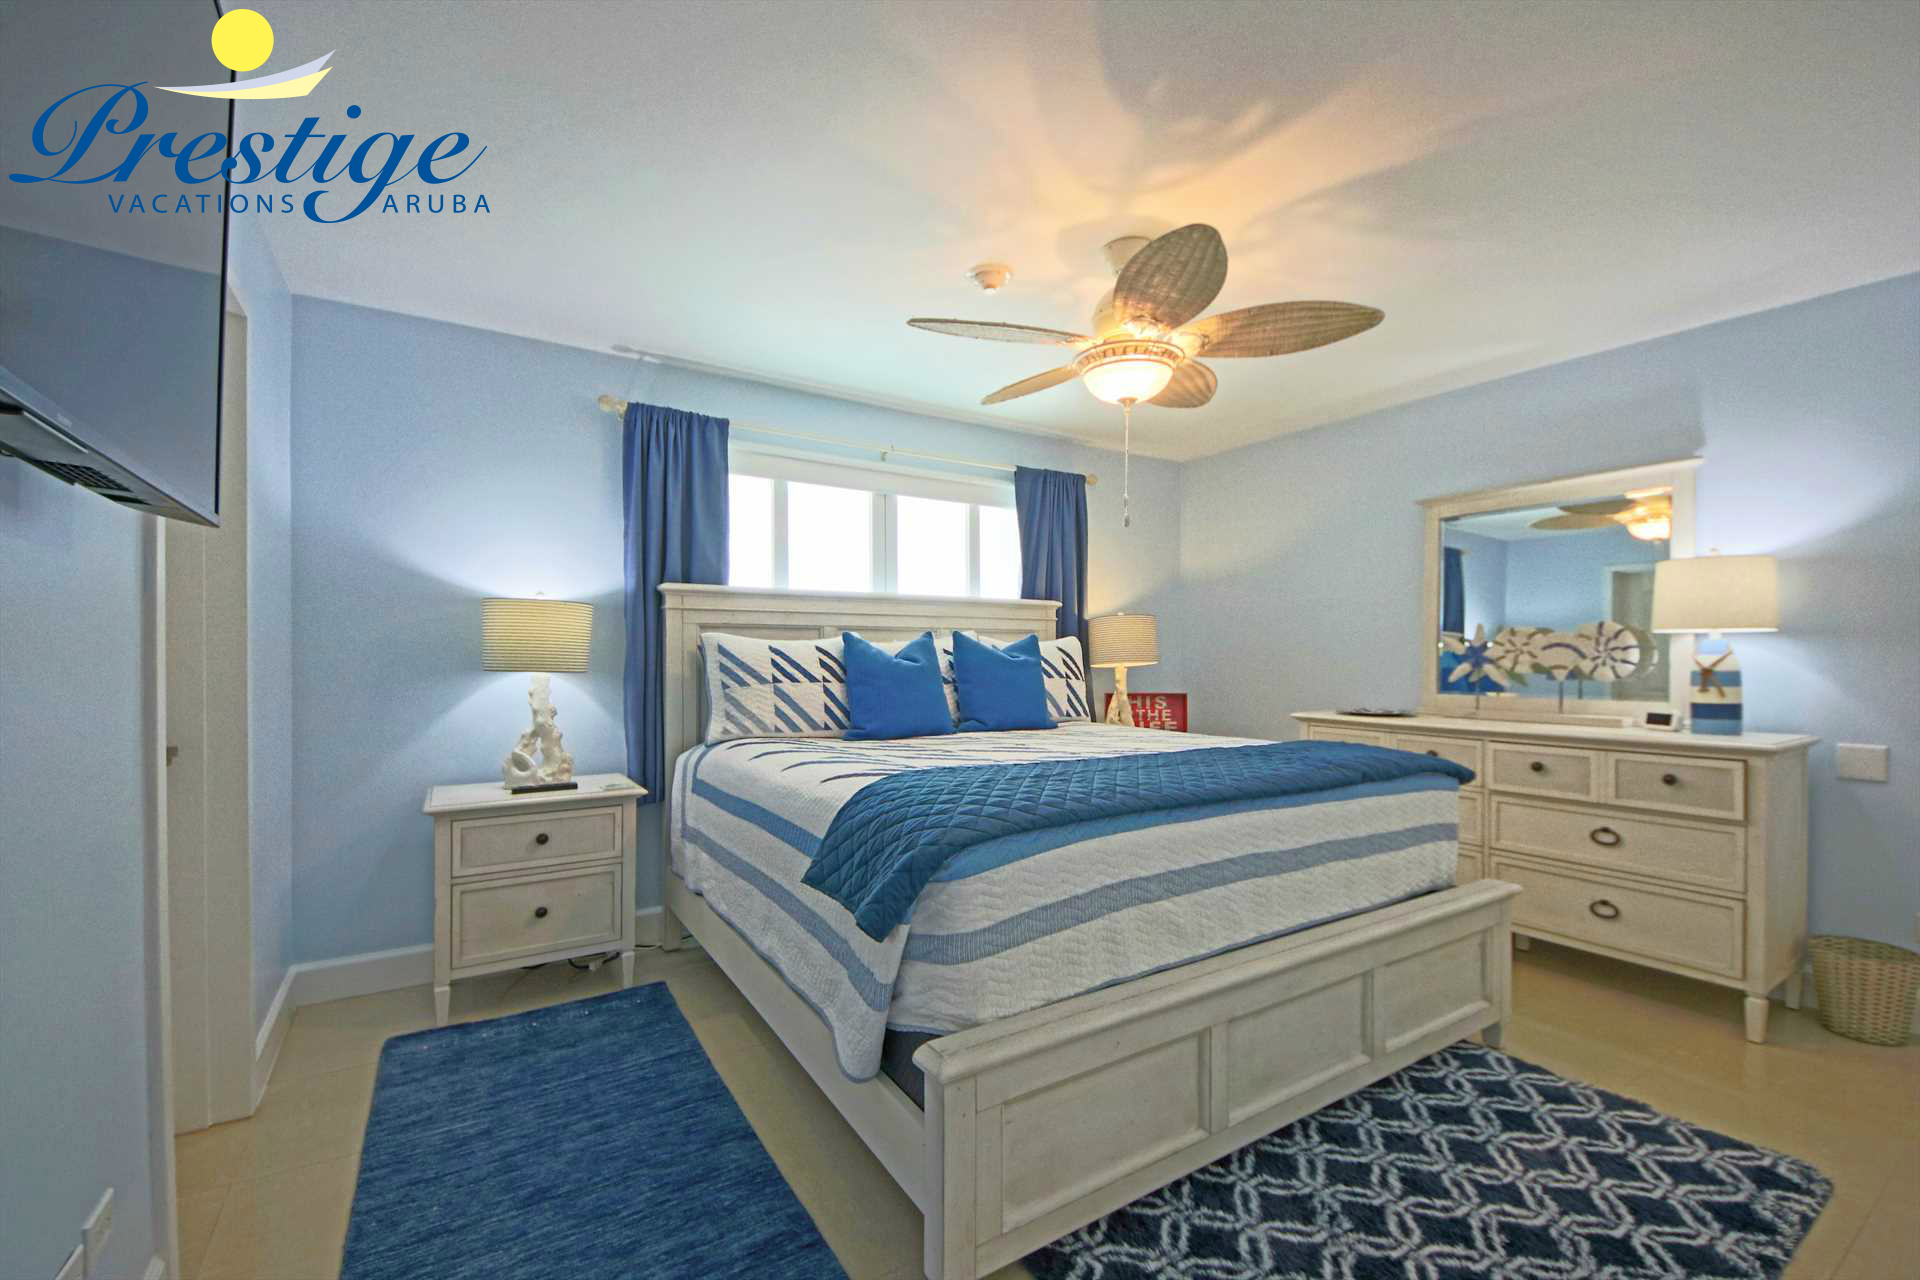 Second bedroom with a king-size bed (with a Beautyrest Legend Luxury mattress)